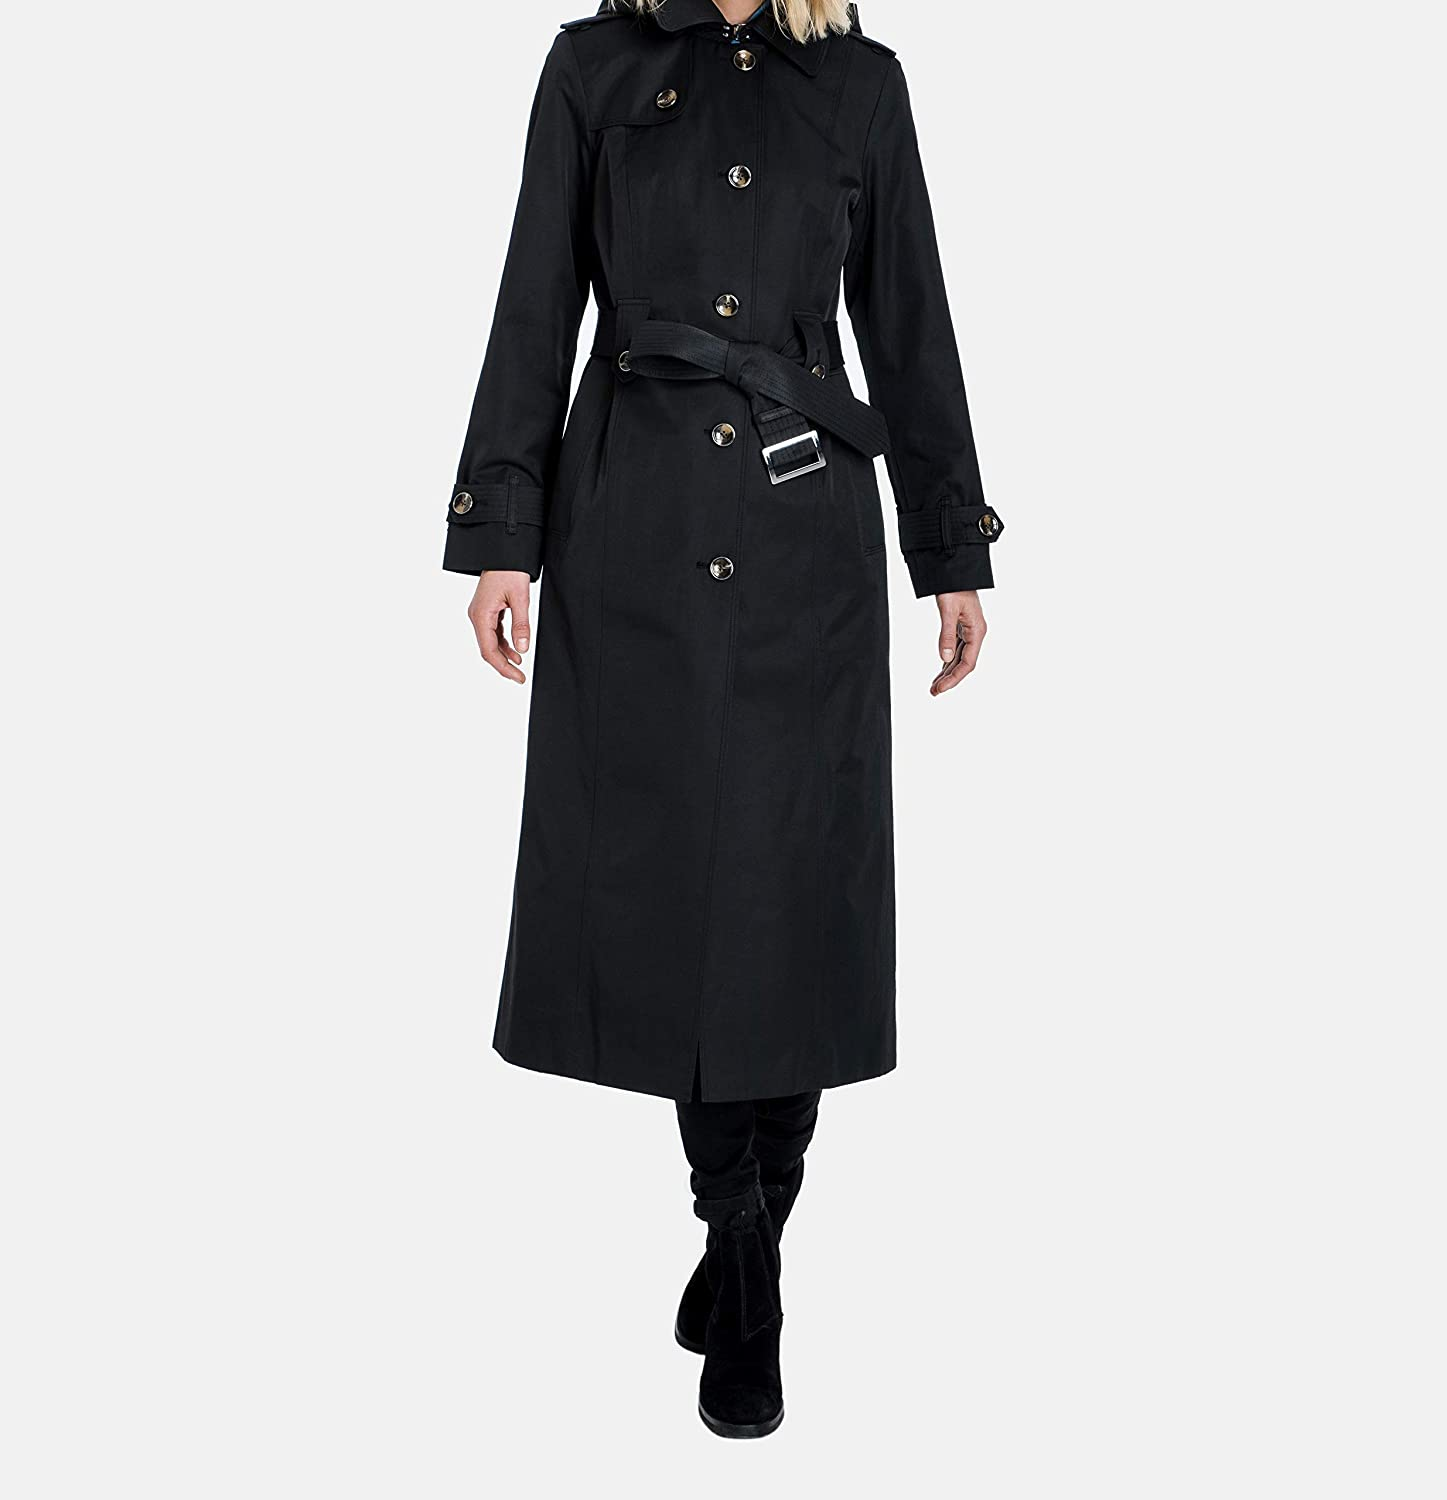 011f37657 London Fog Women's Single-Breasted Trench Coat with Belt